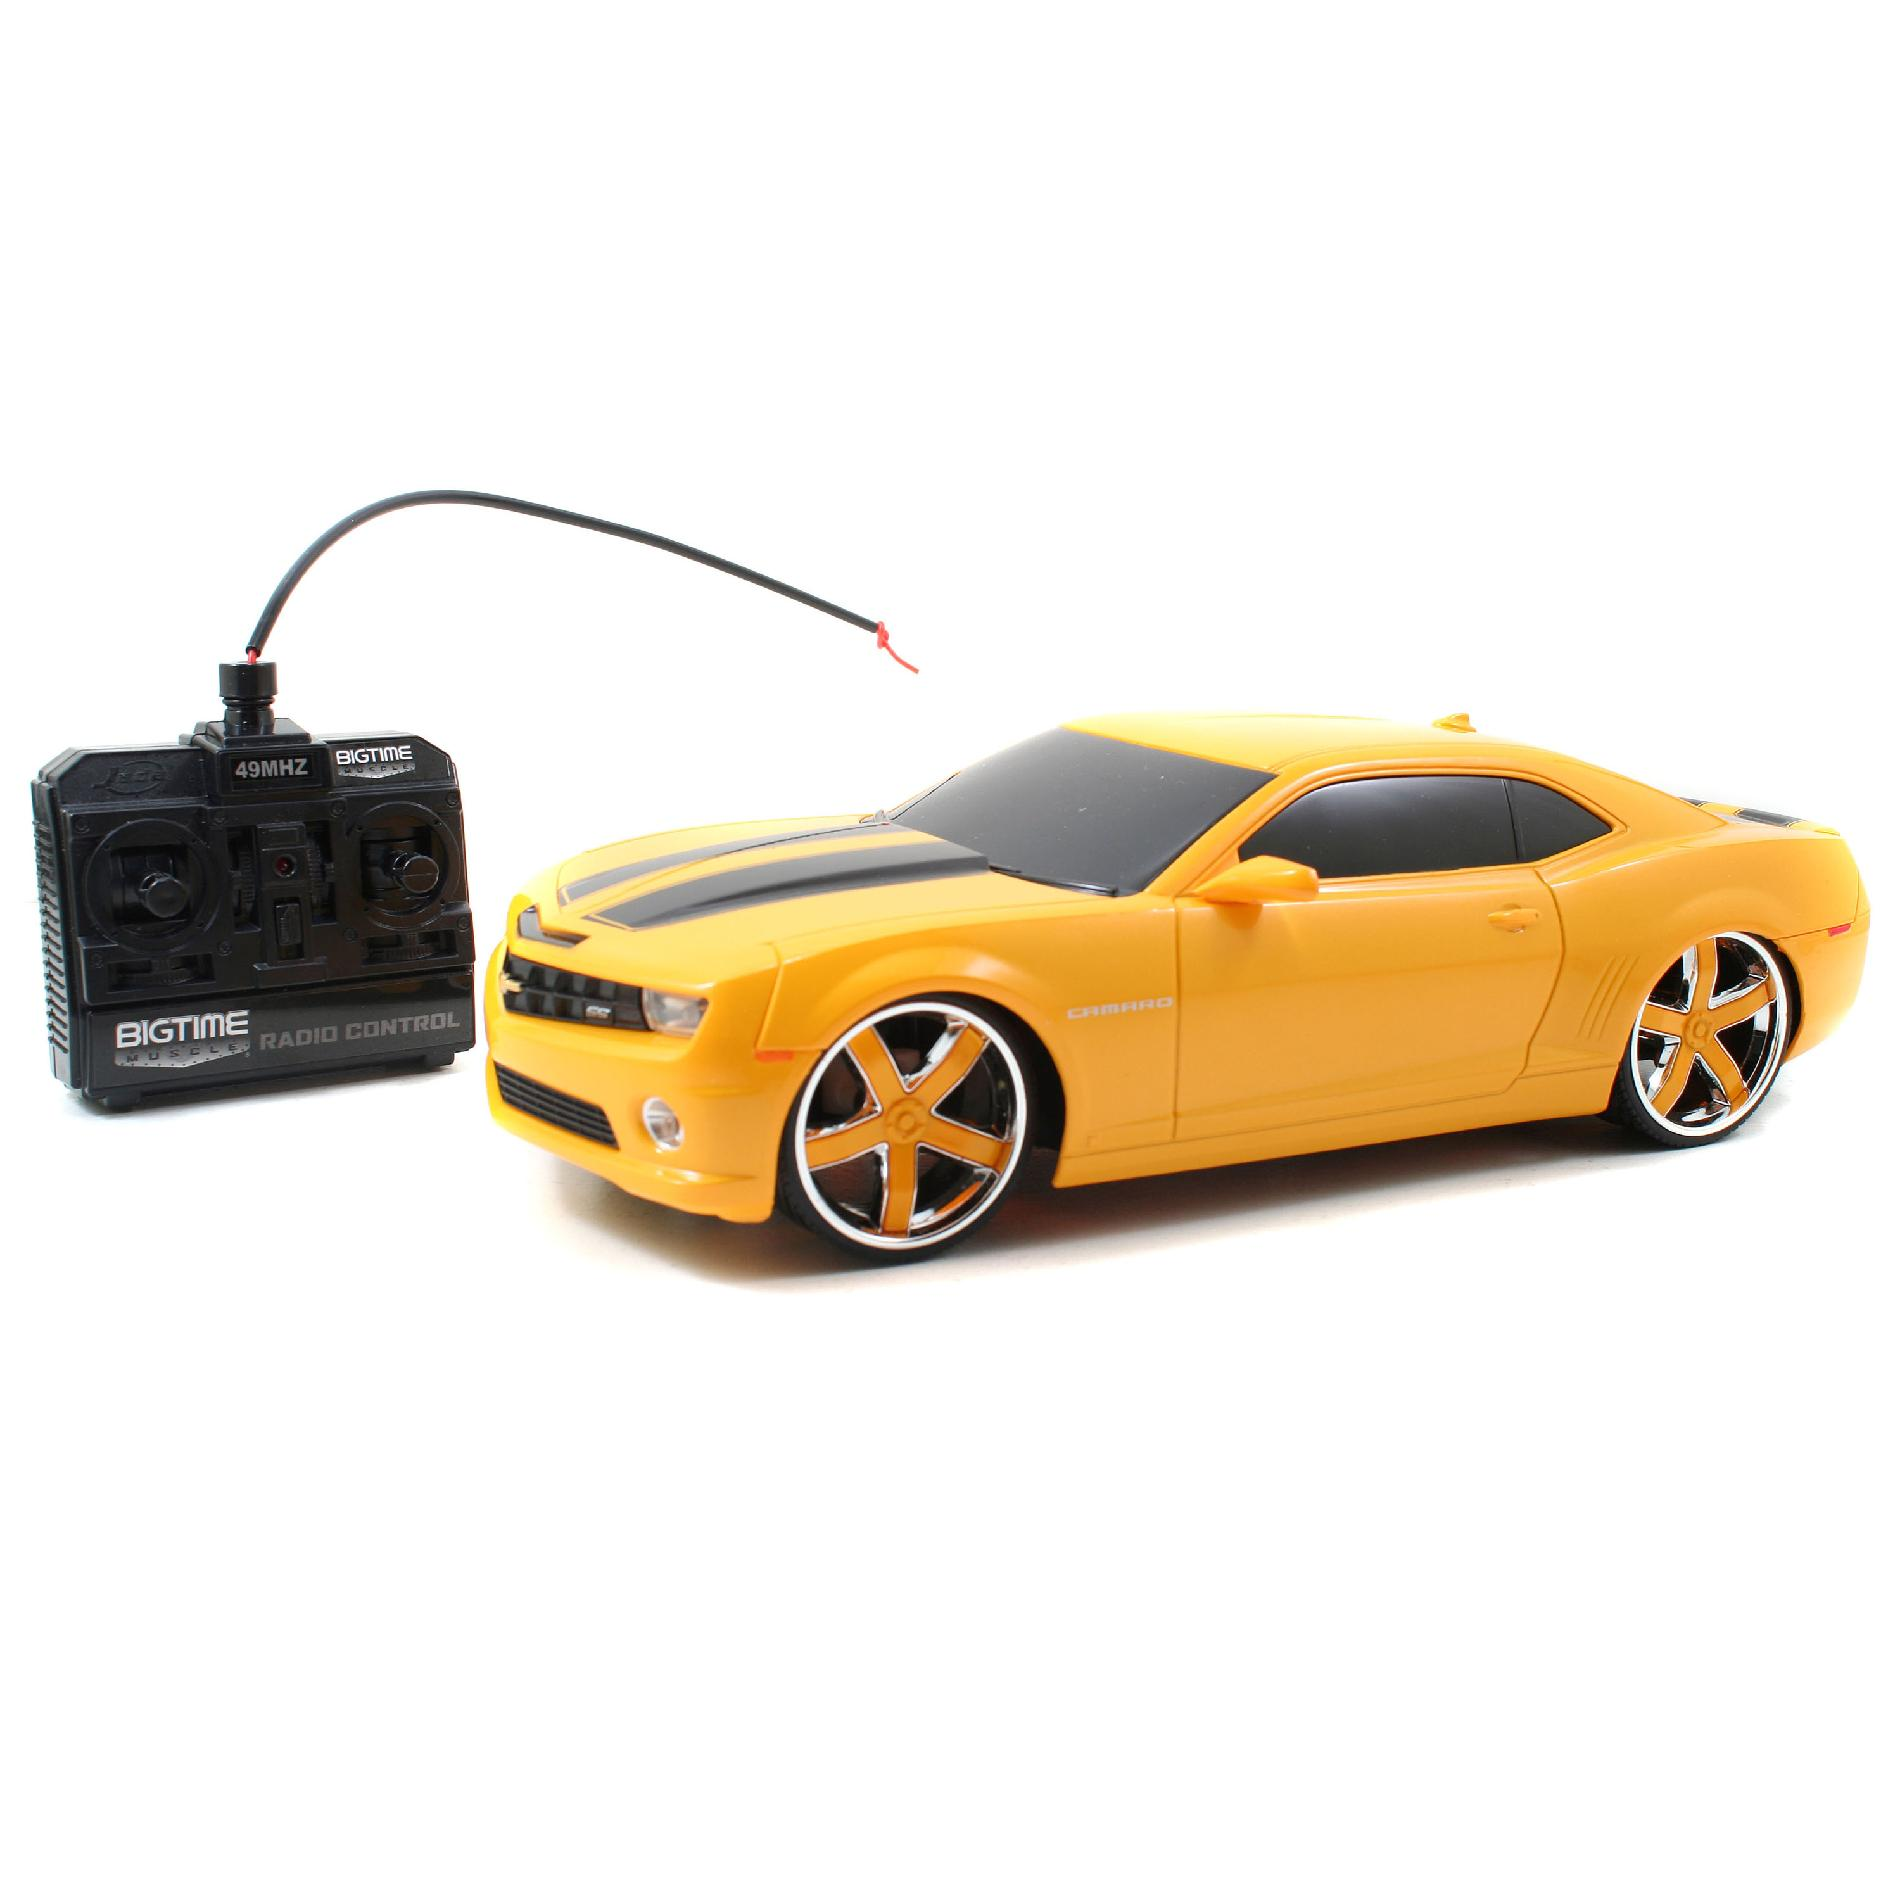 kmart remote control car with P 004v007107691000p on P 004V008552235000P likewise P 004W004632886007P additionally Mini Cooper Toy Car For Kids furthermore P 004W448543810001P furthermore Robotic Enhanced Vehicles Set Of 2.